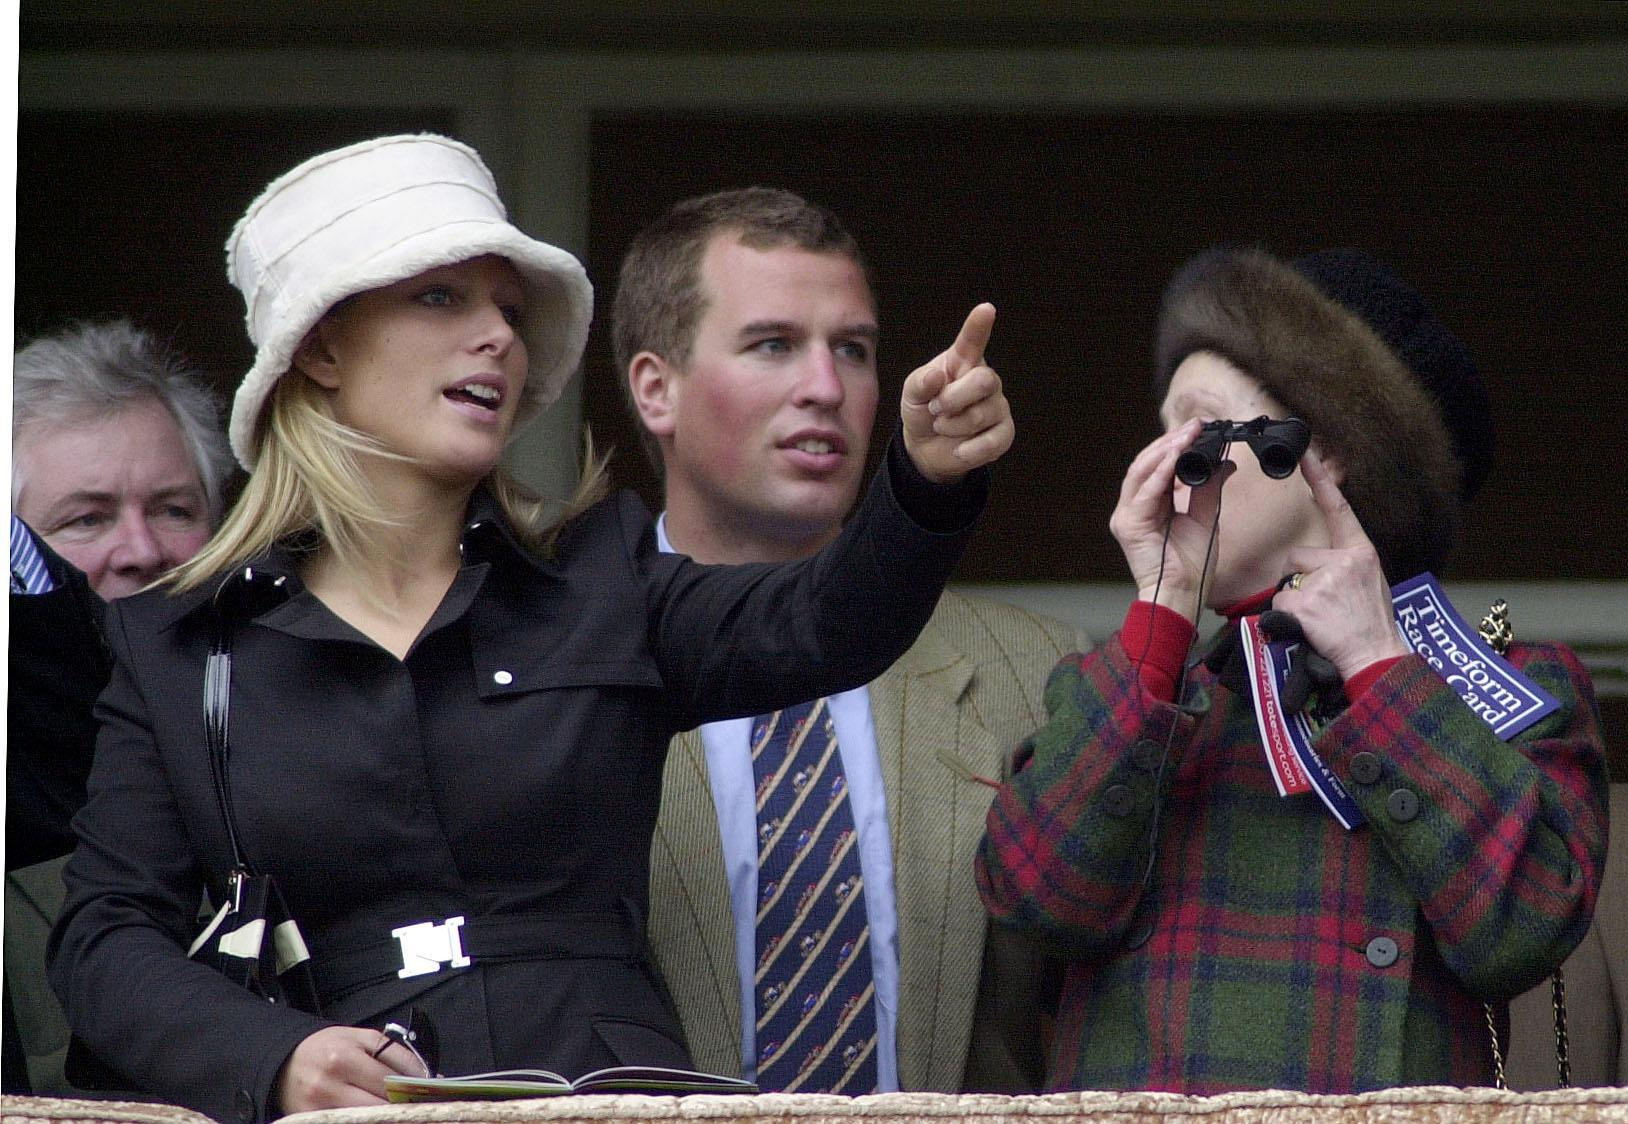 File photo dated 18/03/04 of the Princess Royal (right) with her children Zara and Peter Phillips at Cheltenham Race Course. Anne celebrates her 70th birthday on Saturday.,Image: 551795853, License: Rights-managed, Restrictions: FILE PHOTO, Model Release: no, Credit line: David Jones / PA Images / Profimedia